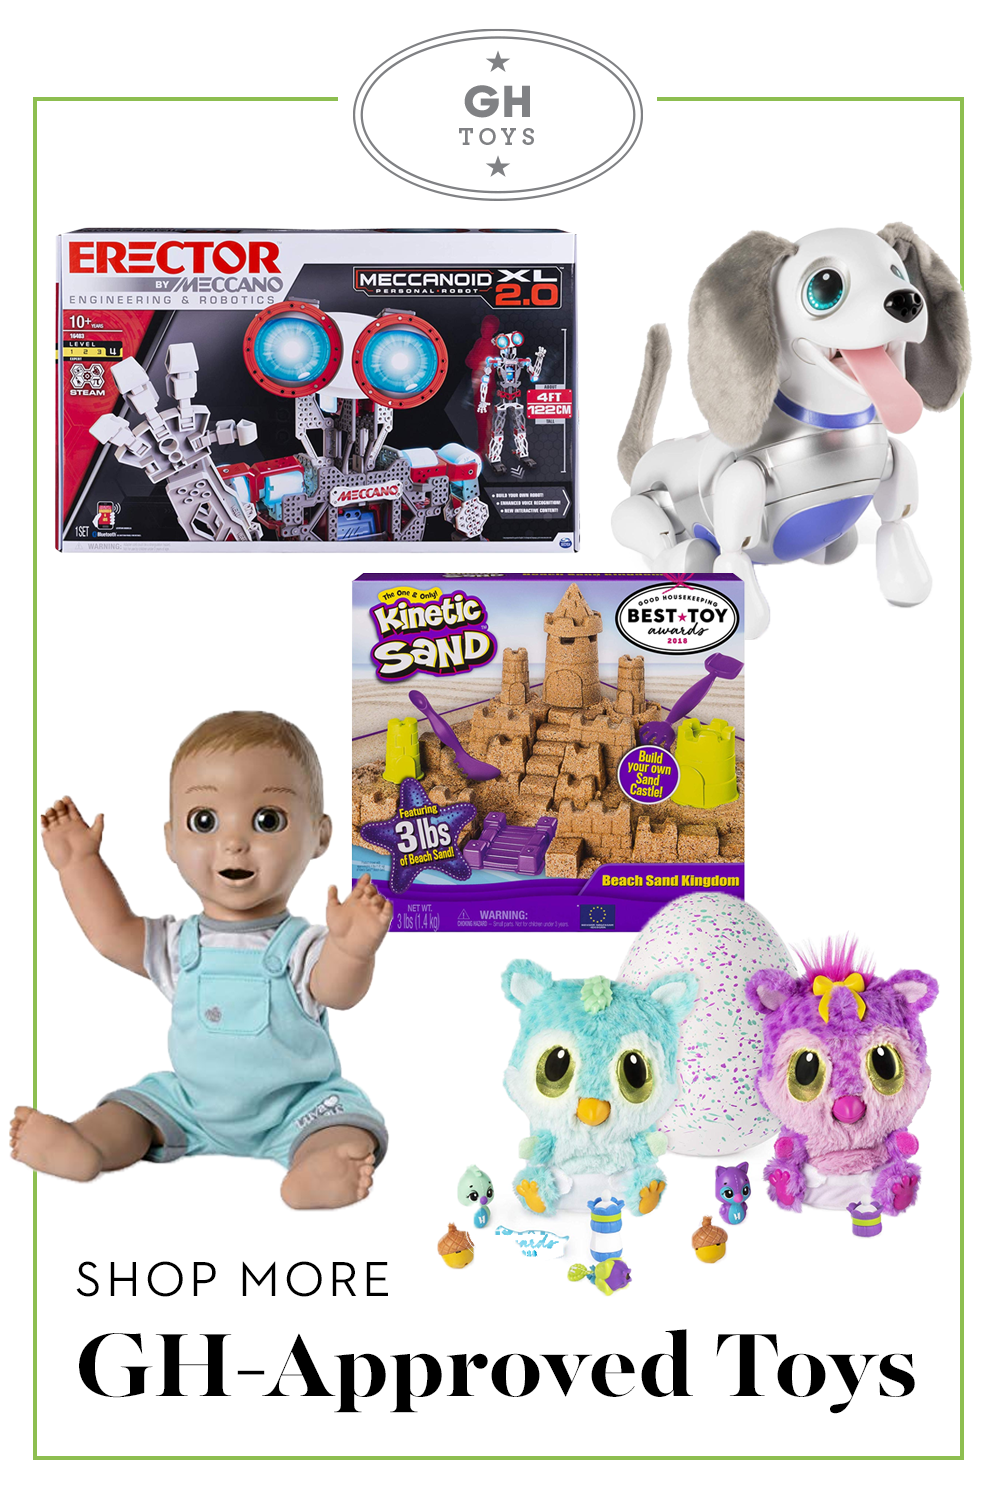 30+ Best Kids Gifts 2018 - Good Gift Ideas for Kids